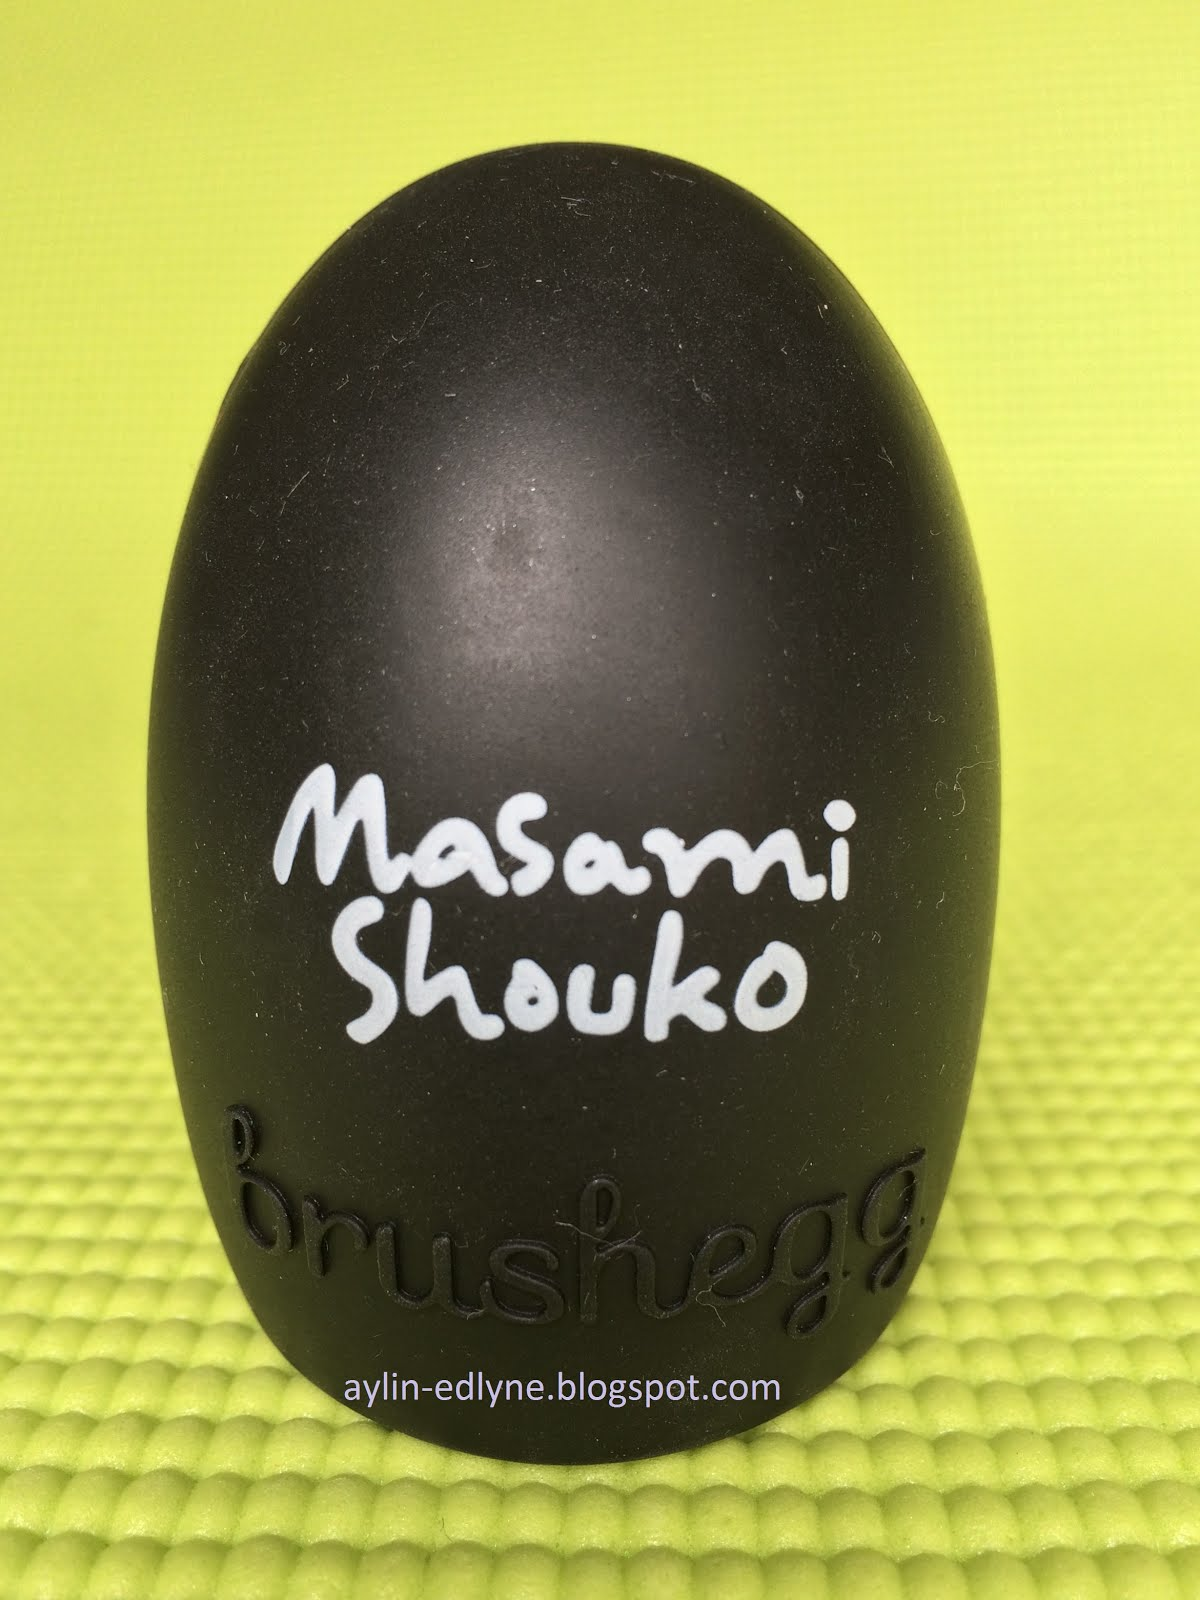 Review Brush Egg Masami Shouko What I Really Like About This It Is Good For Getting Small Brushes Super Clean Just Use Baby Shampoo Try To Find Which Give